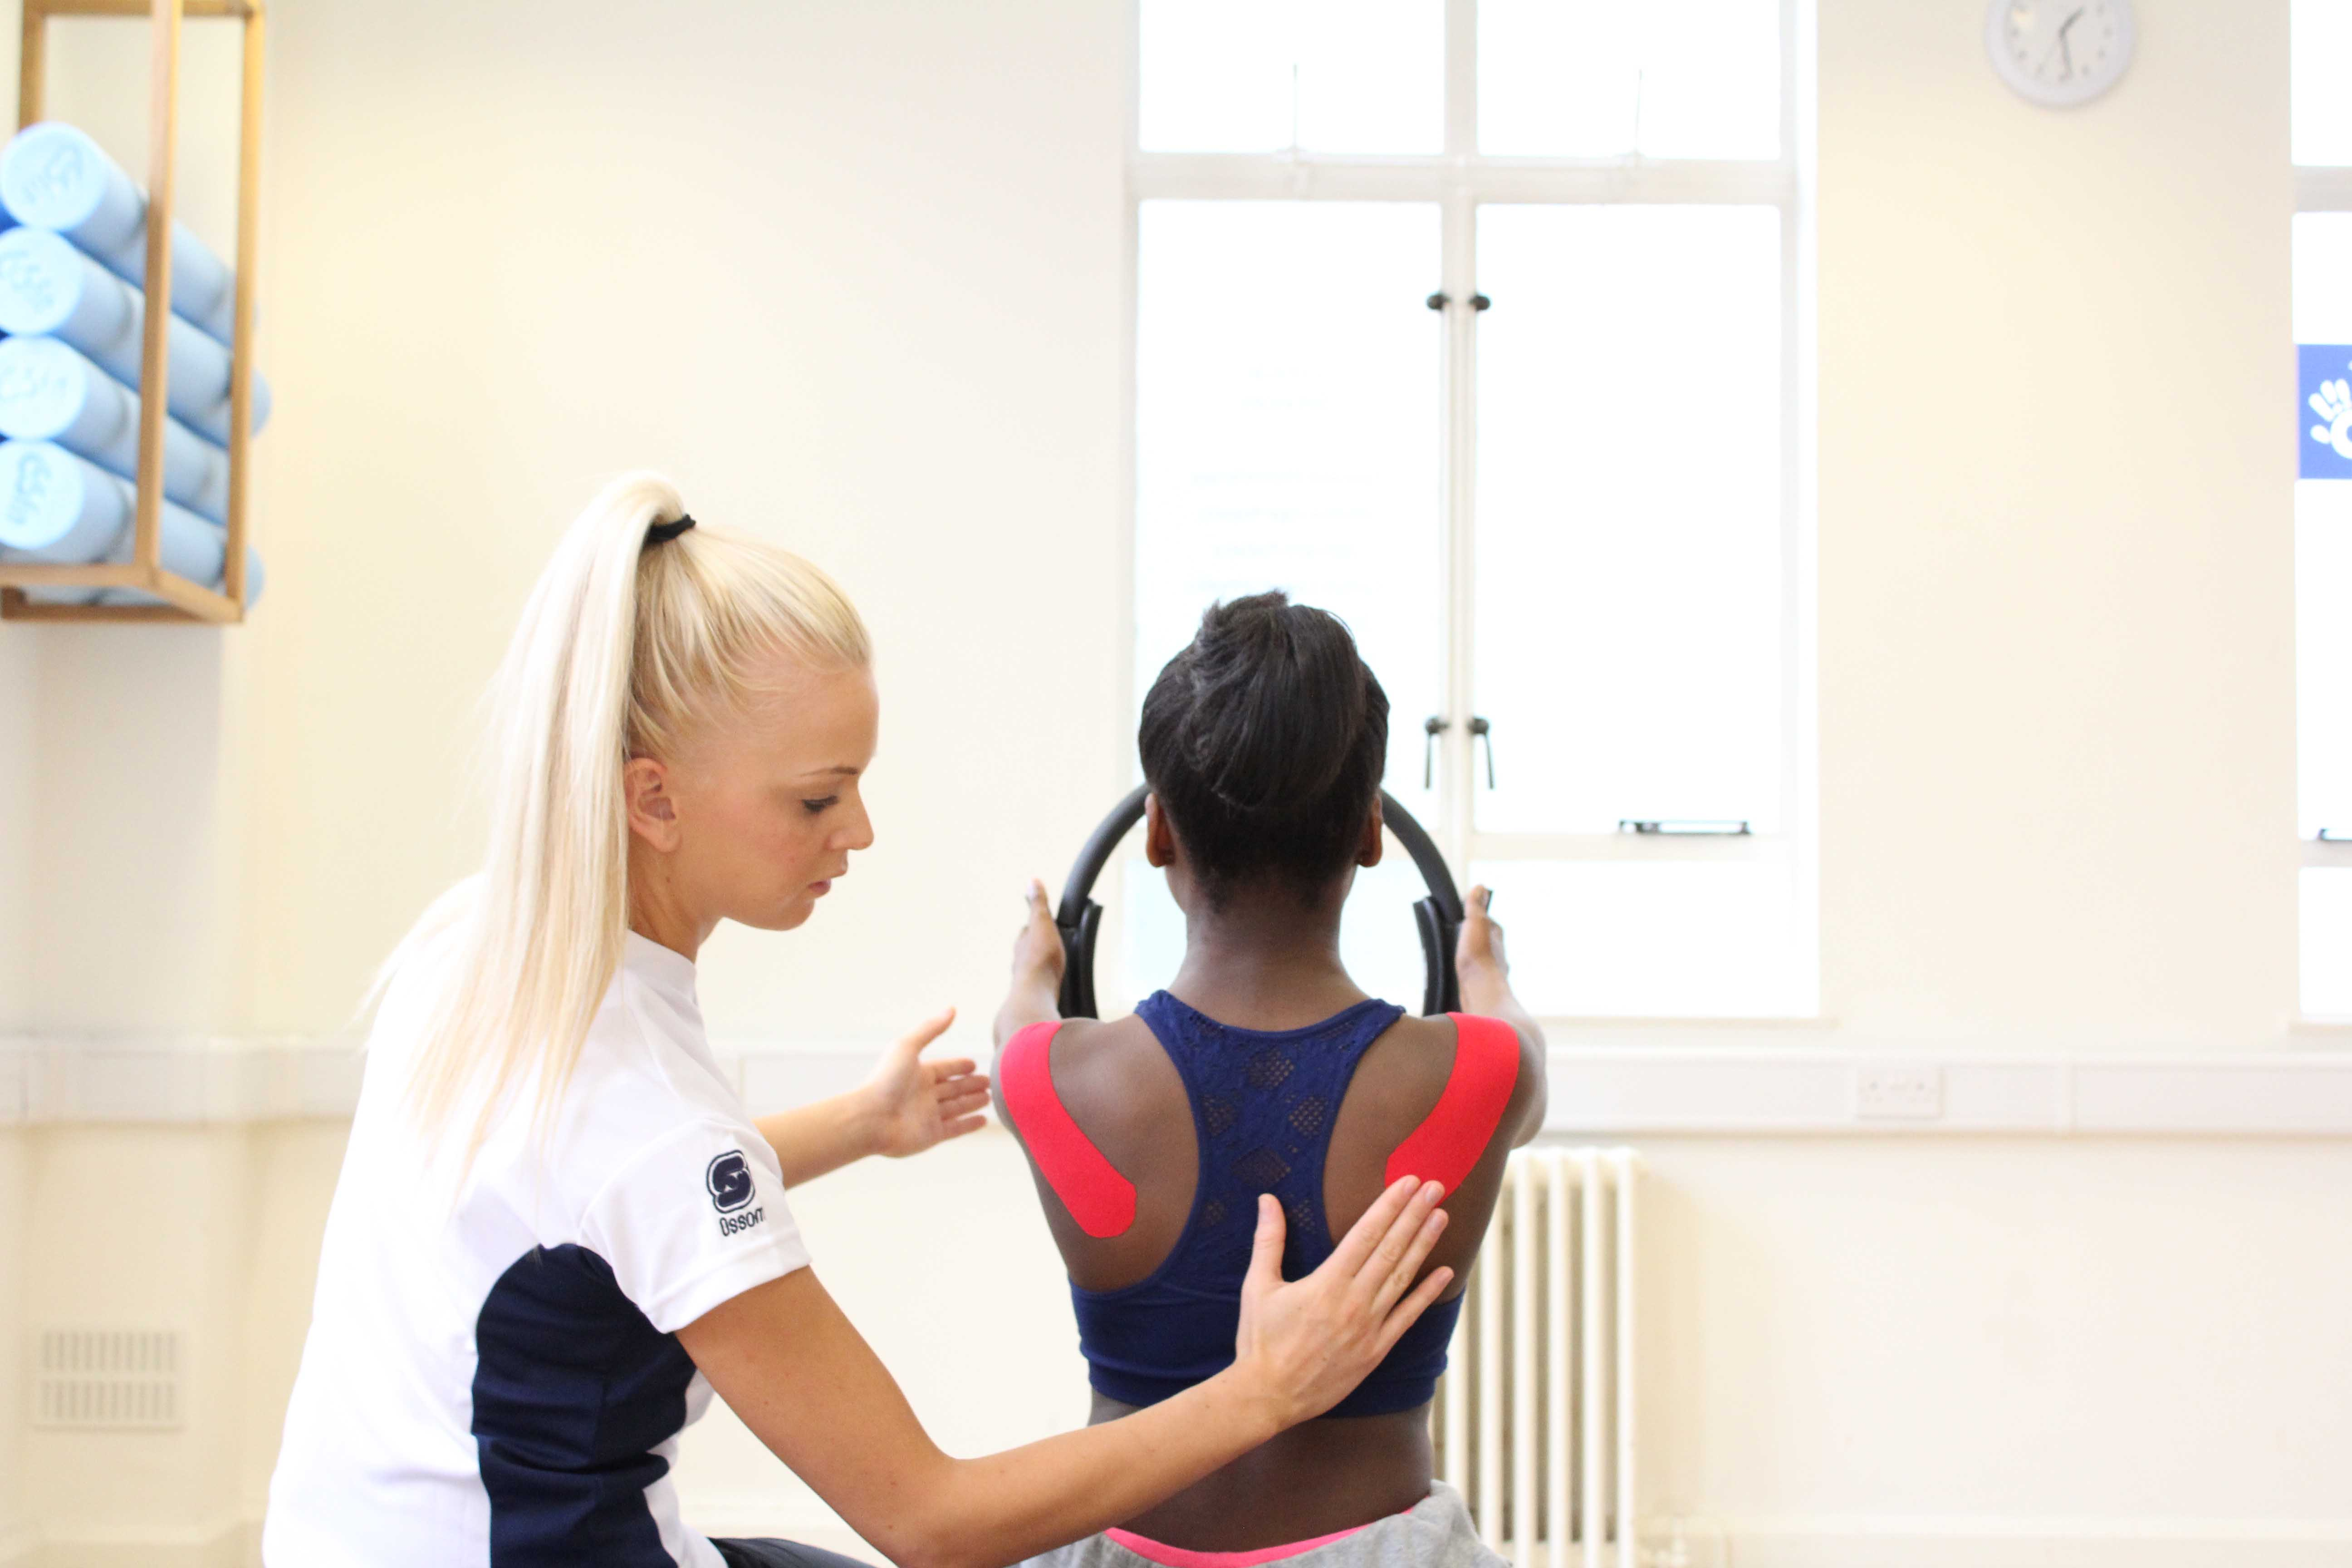 Physiotherapist using taping to help stabilise the muscles in the upper back during exercise